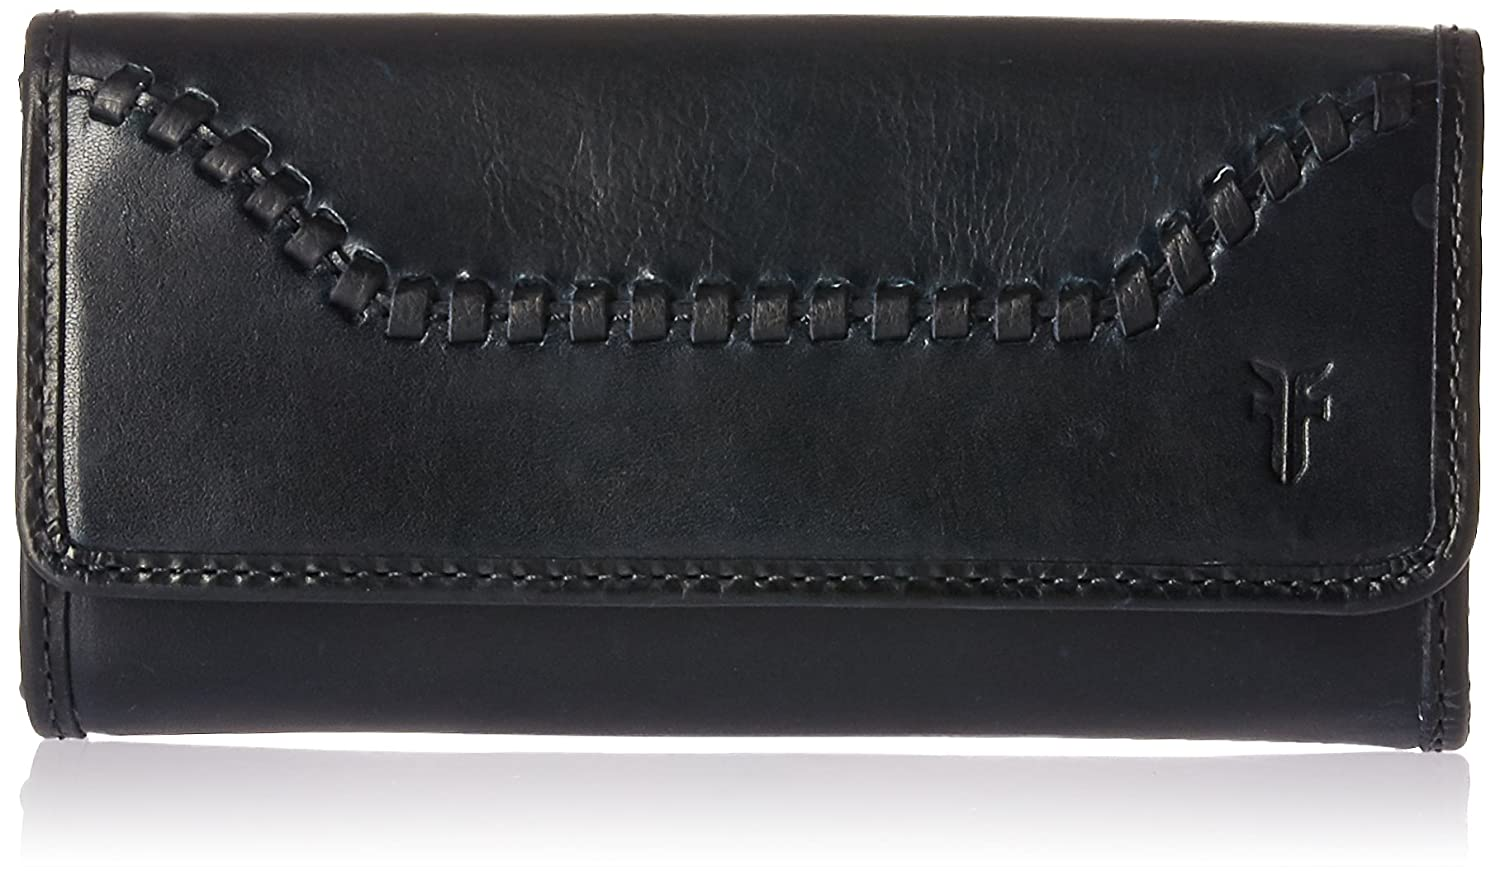 FRYE Melissa Continental Whipstitch Snap Wallet NAVY One Size DB389